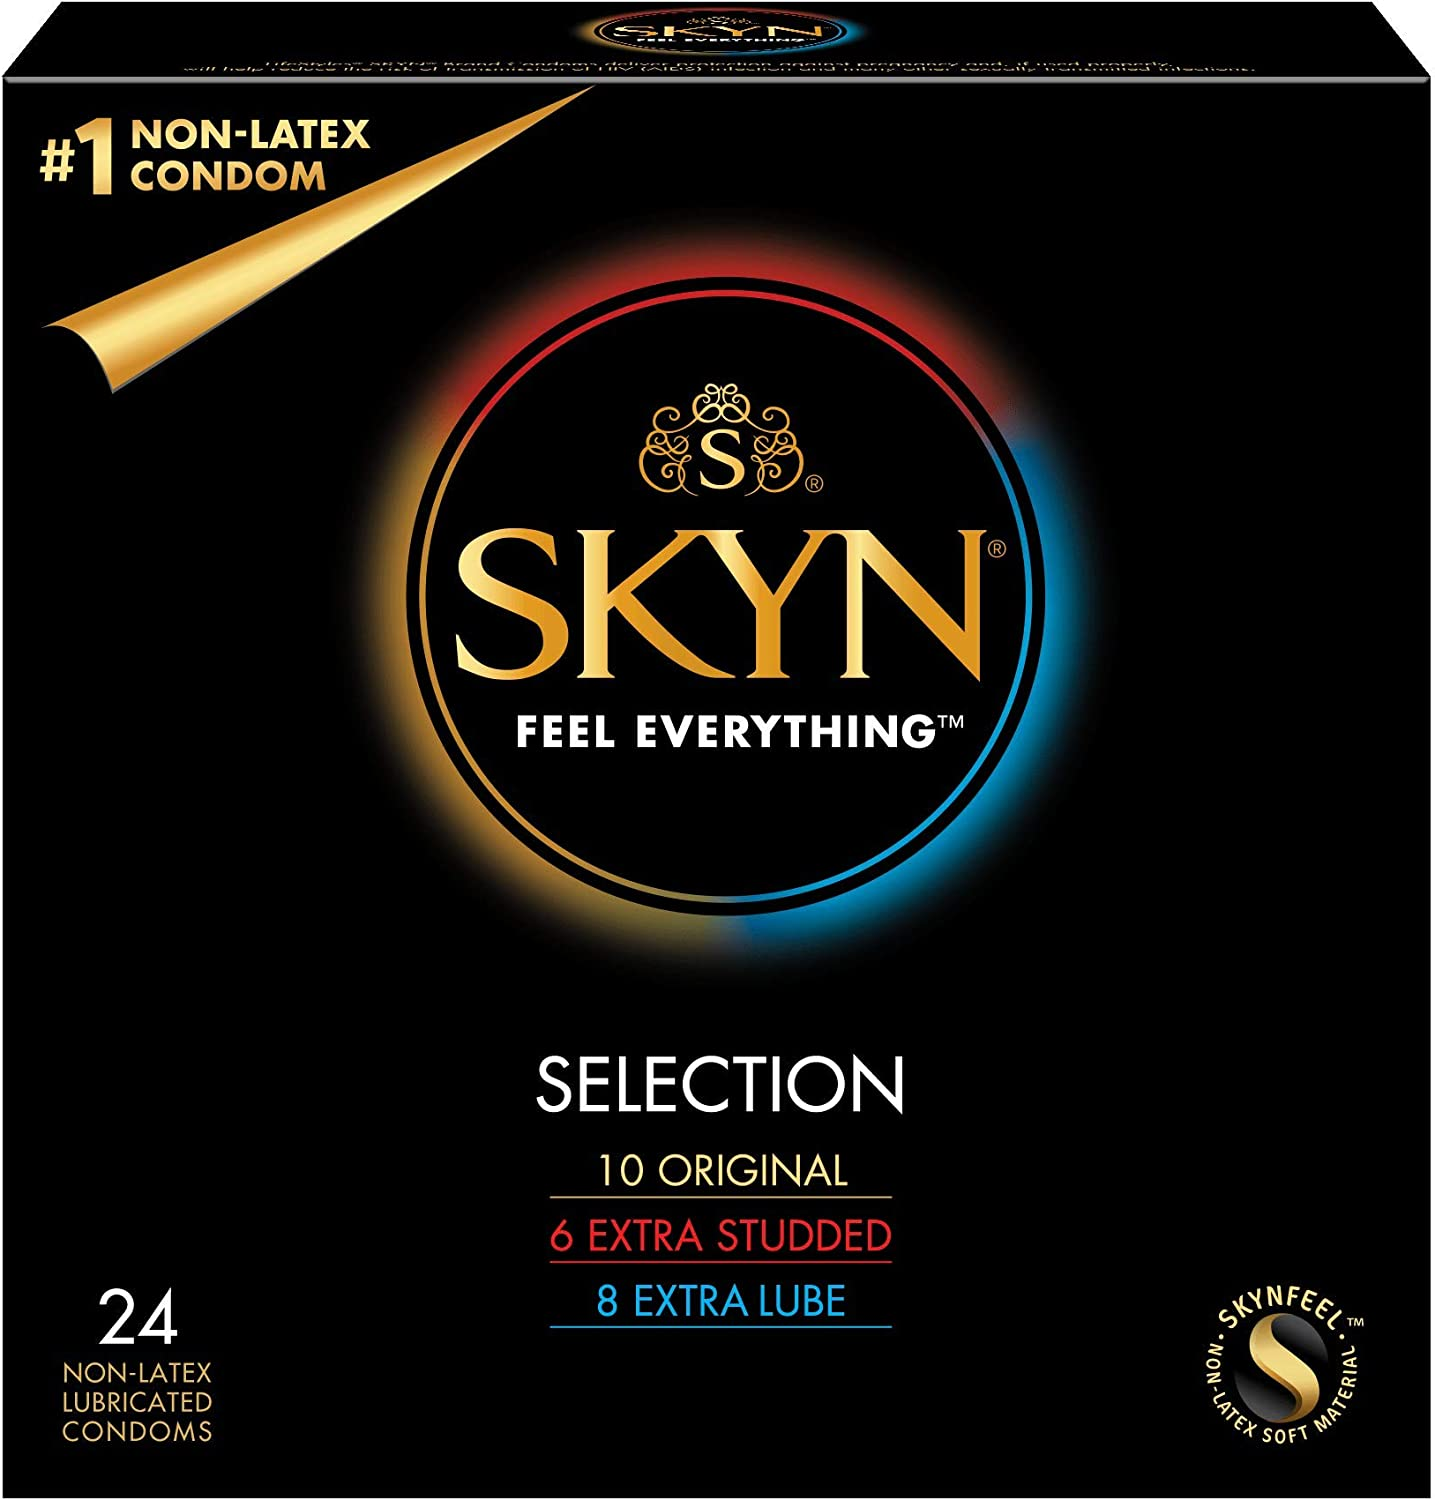 B00JKDH7WM Lifestyles SKYN Selection Condoms 714gq8p6J9L